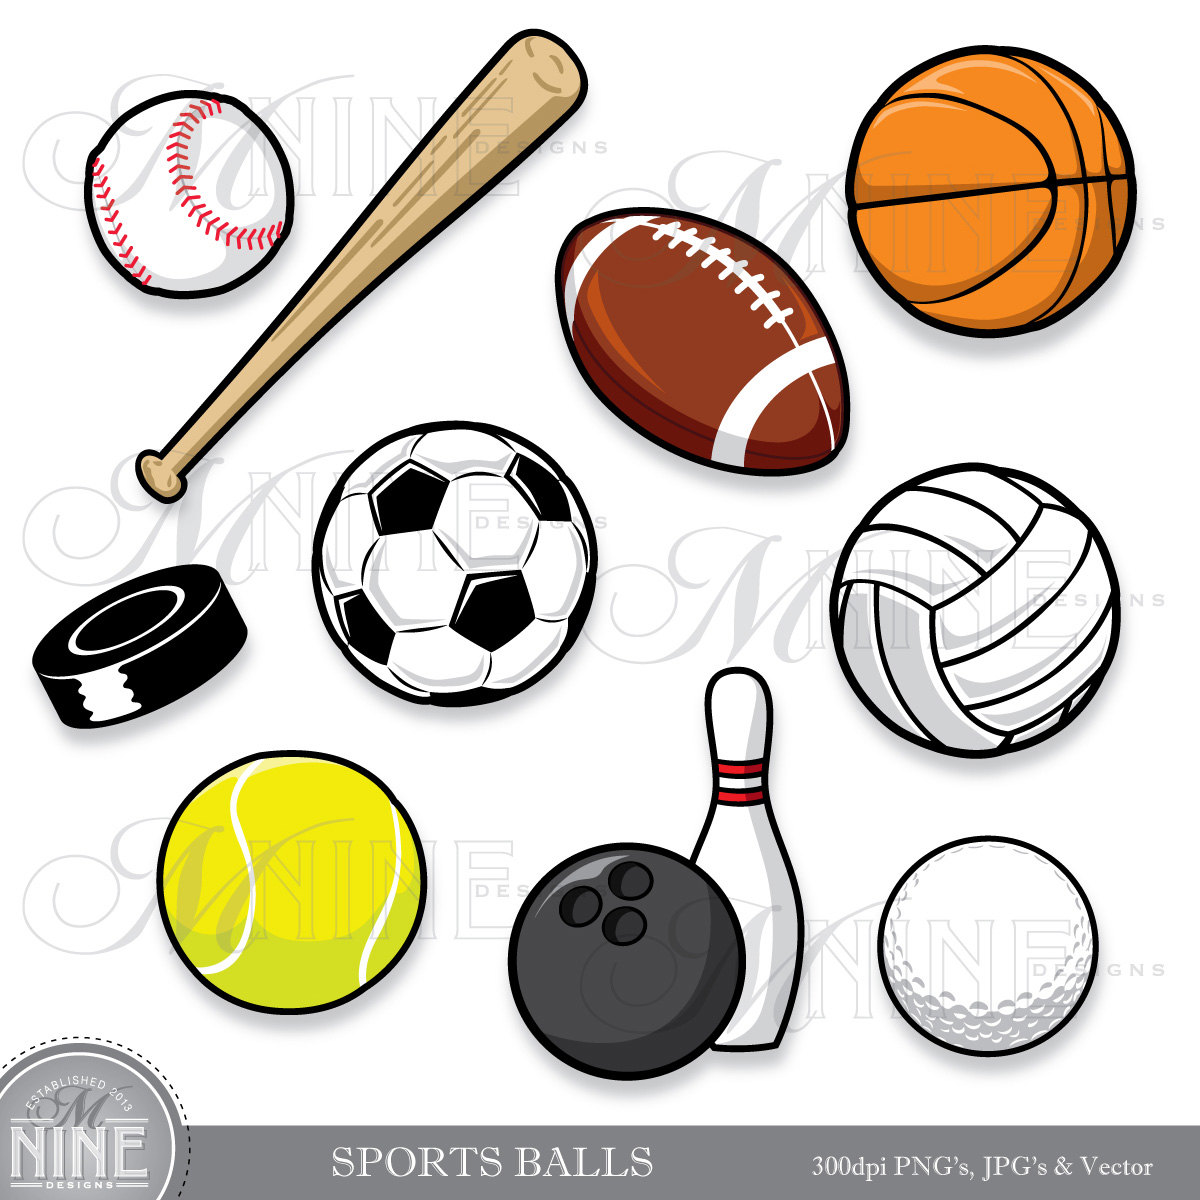 Free sports graphics clipart clipart royalty free stock Free Sports Clipart & Sports Clip Art Images - ClipartALL.com clipart royalty free stock